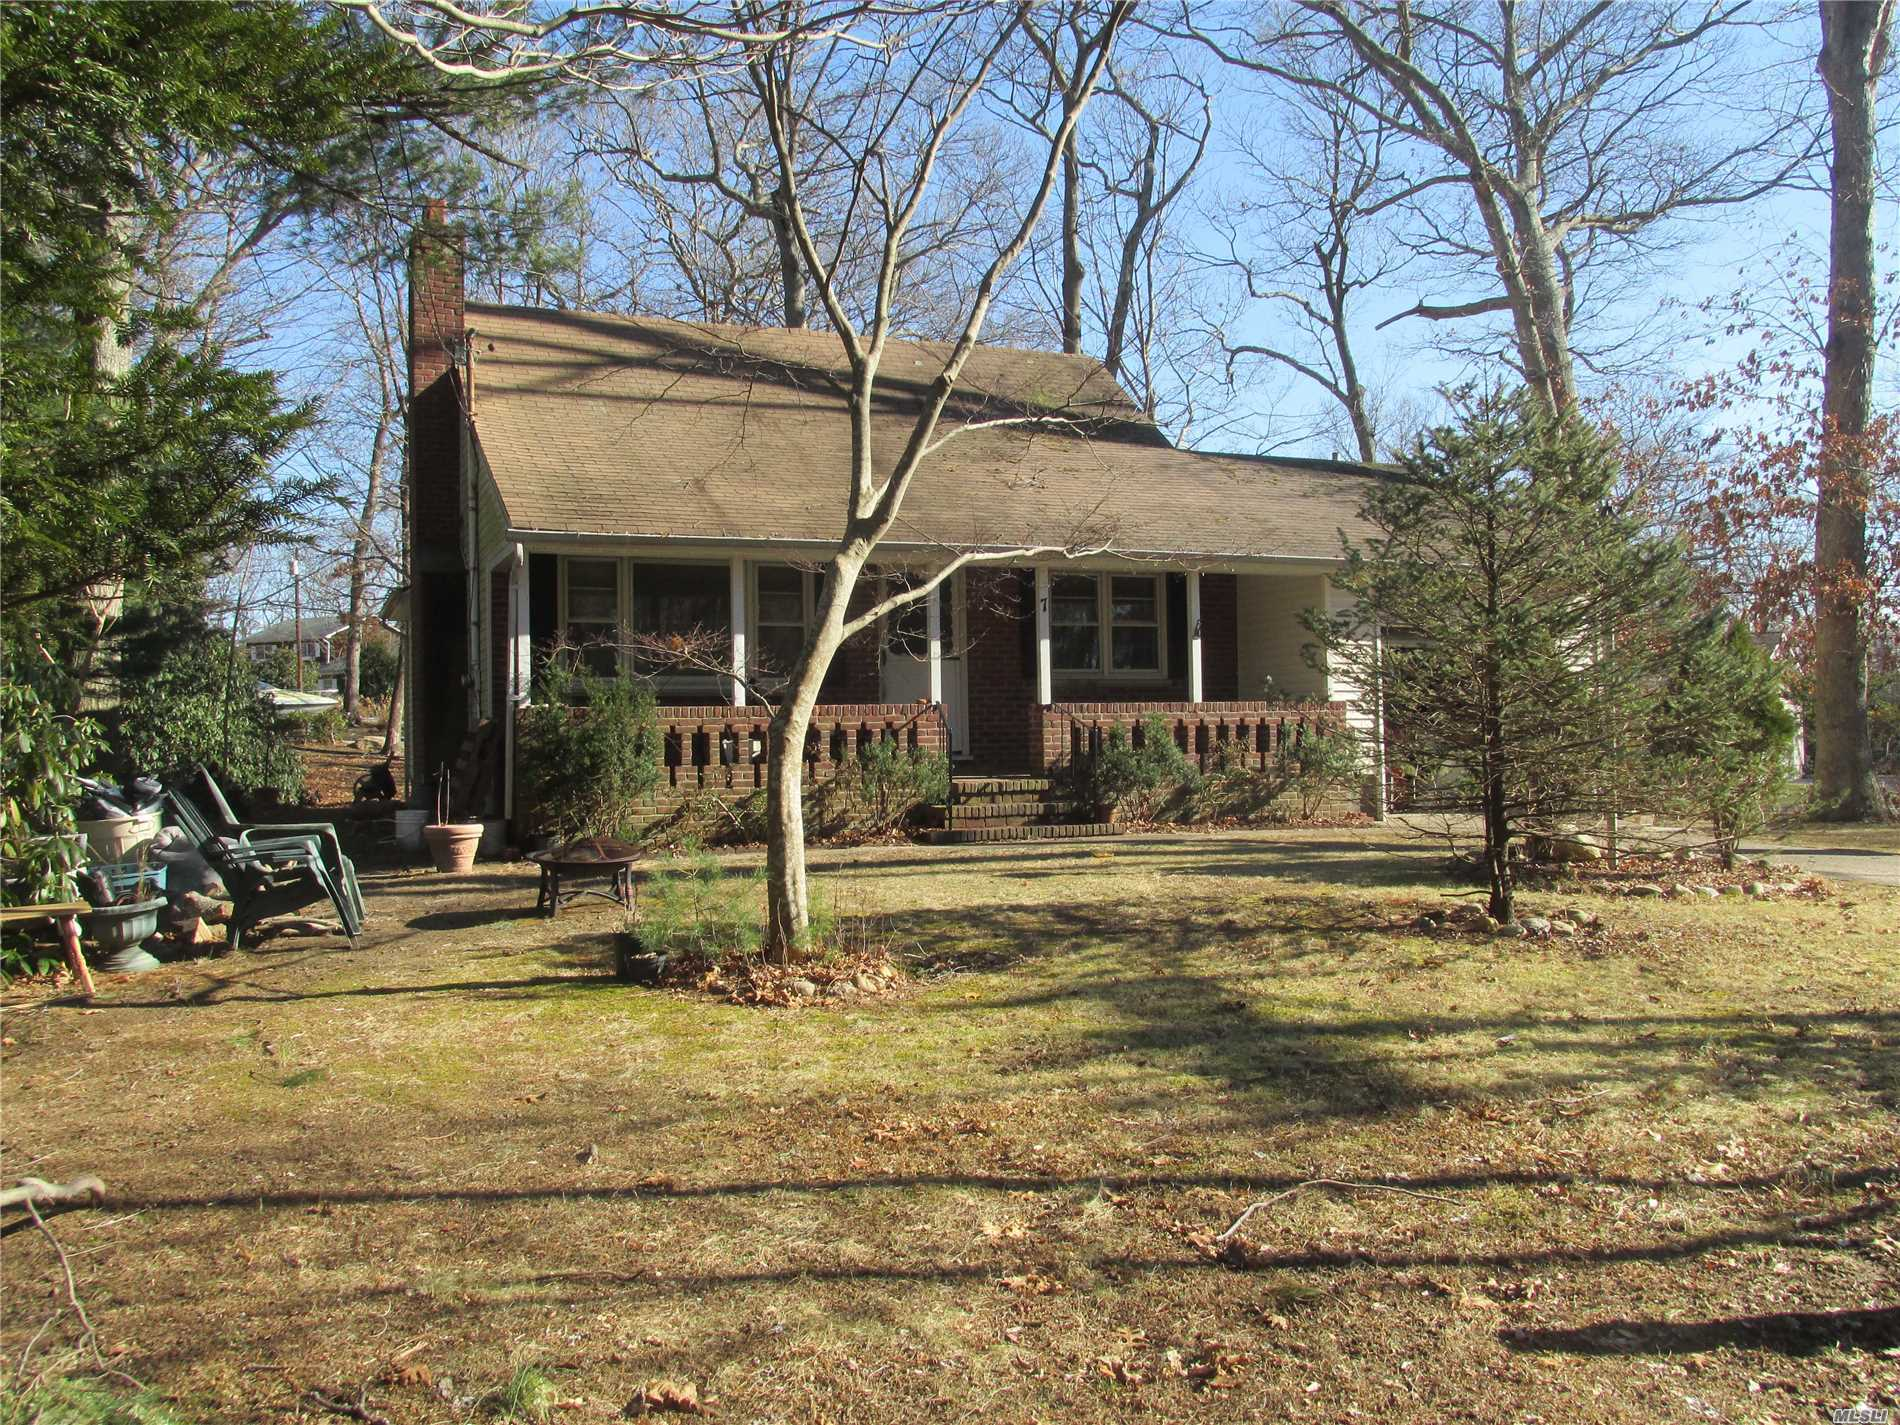 This Charming Custom Built Expanded Cape Located North Of North Country Rd. Has Been In This Same Family For Decades. It Features A Cozy Living Room W/Fireplace, Parkay Hardwood Floors Thru Out, Eat In Kitchen, Large Dining Room/Den, 4/5 Bedrooms, 5th Bed/Office, Full Basement, 1 Car Garage, Deeded Beach Rights All On A Nice Country Setting And Just Minutes To Acres Of Beautiful Beaches. Shoreham/Wading River Sd Too.